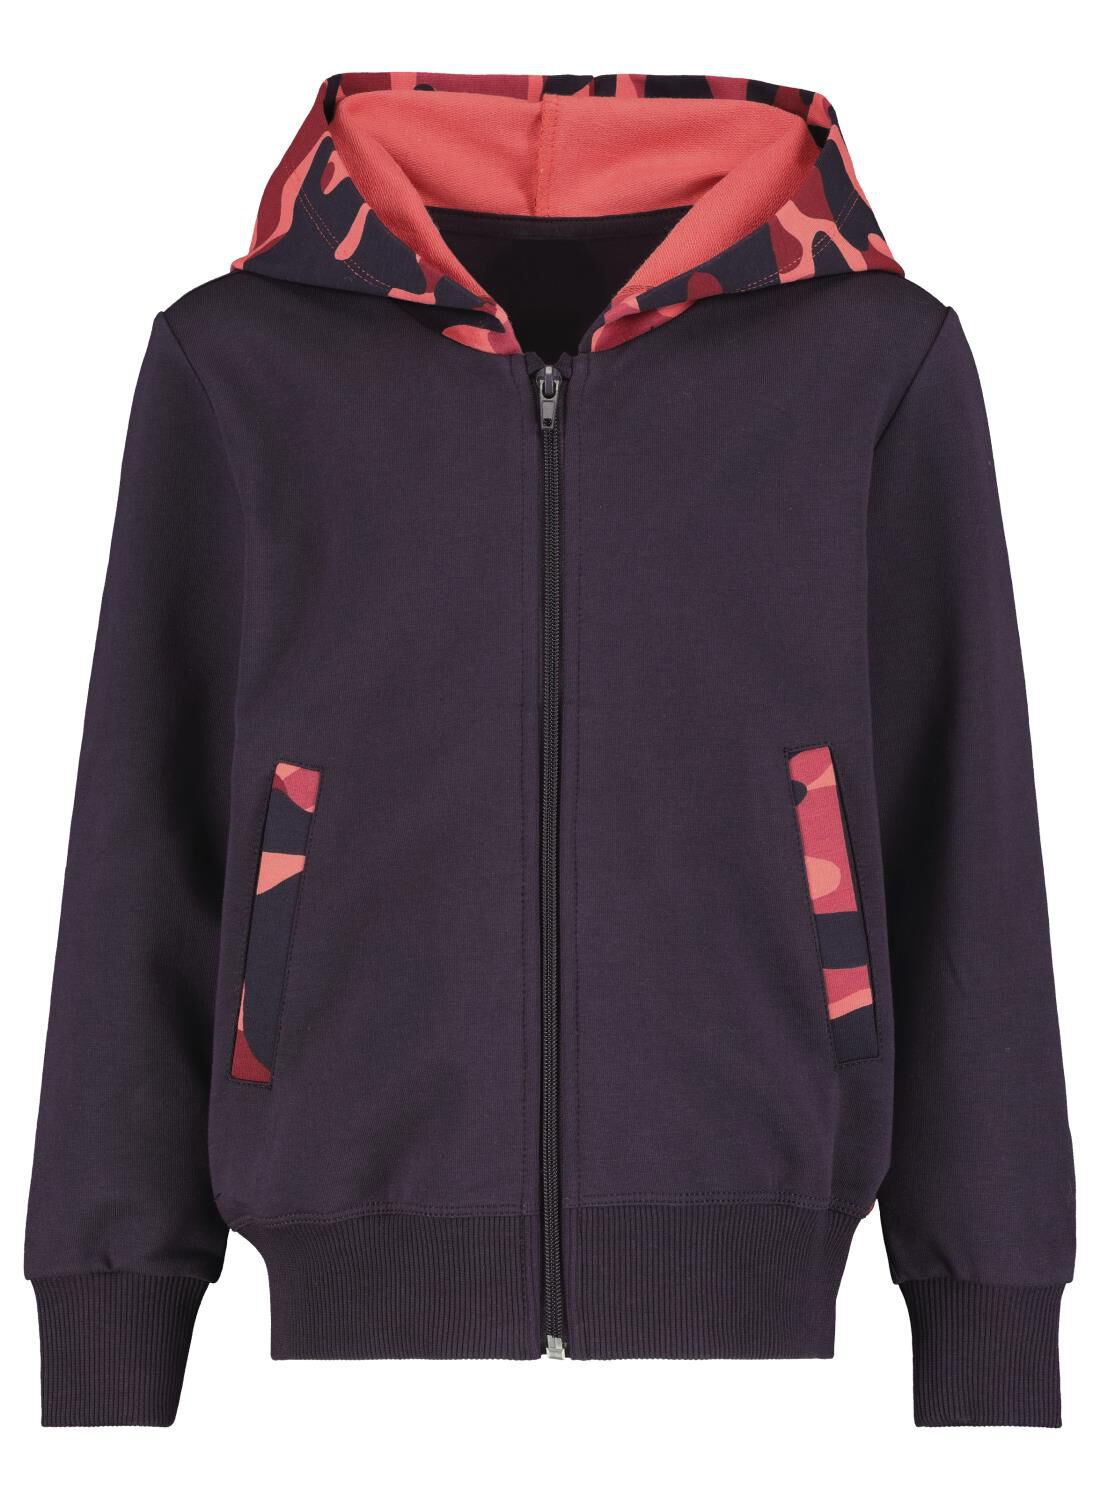 Bananas&Bananas Kinderhoody - Bananas&Bananas Rood (rood)